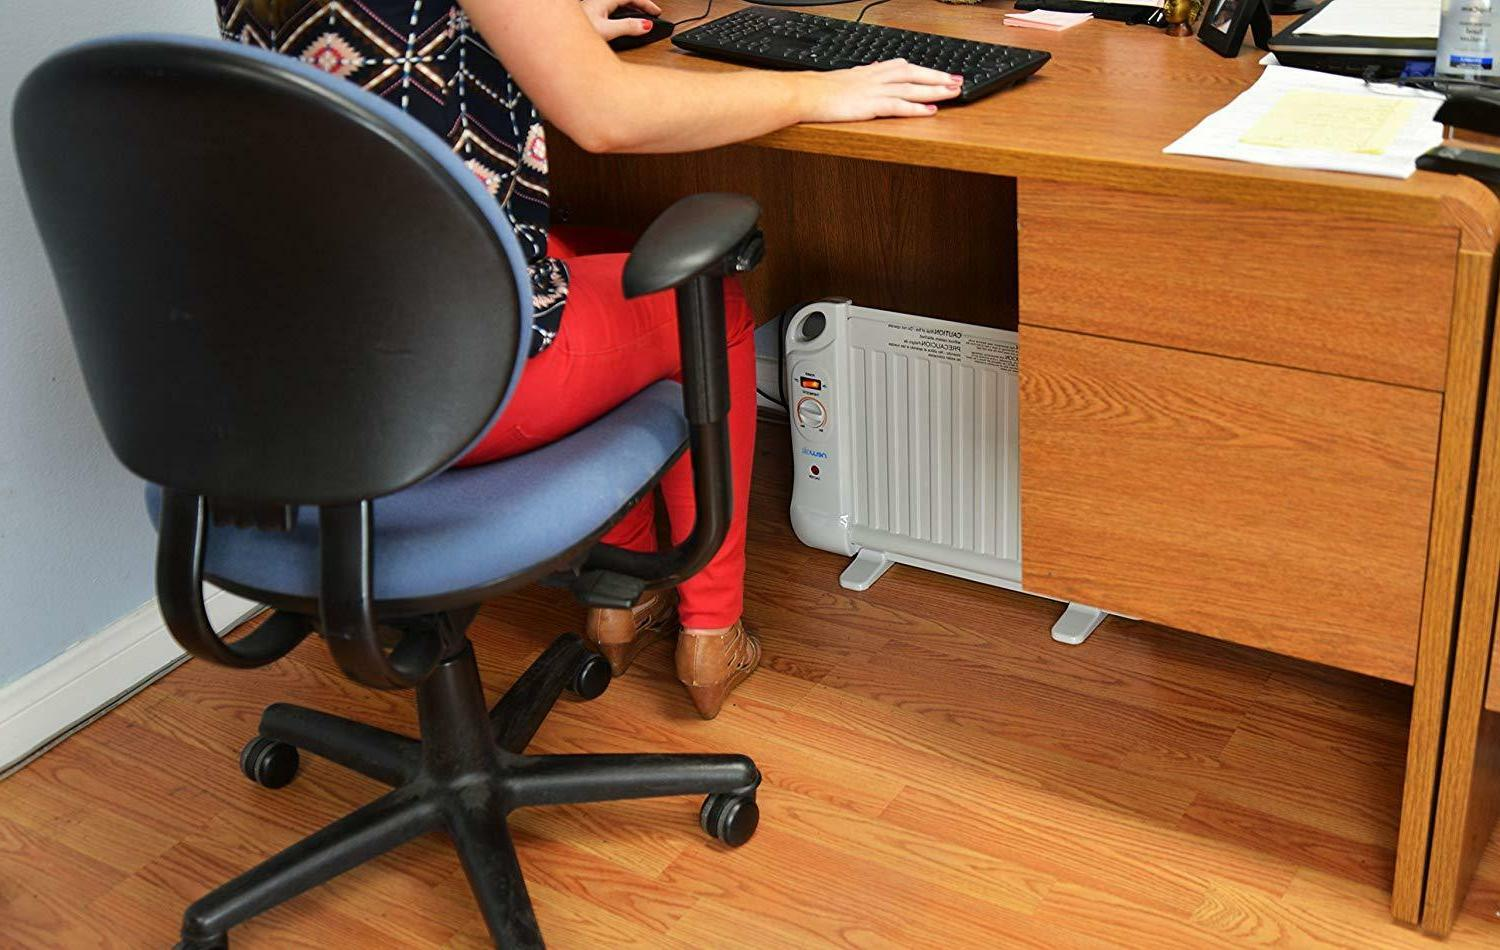 space heater electric bedroom office portable thermostat